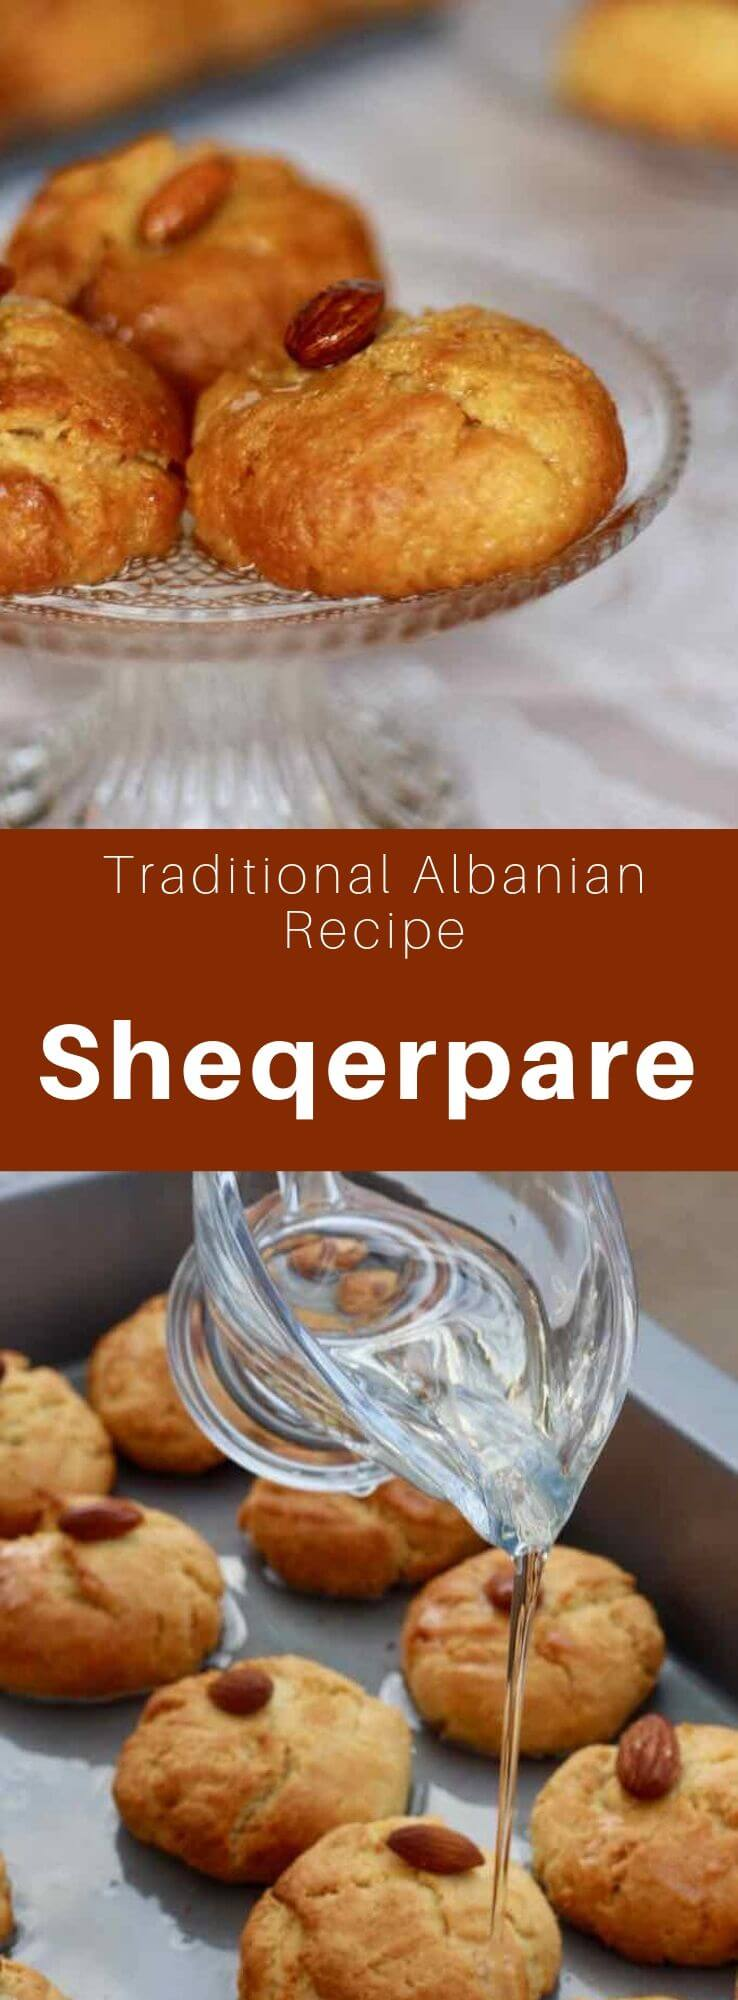 The sheqerpare are small butter biscuits soaked in sugar syrup originally from Albania. In Turkey, they are called şekerpare. #Albania #AlbanianRecipe #AlbanianCuisine #Turkey #TurkishRecipe #TurkishCuisine #Balkans #WorldCuisine #196flavors